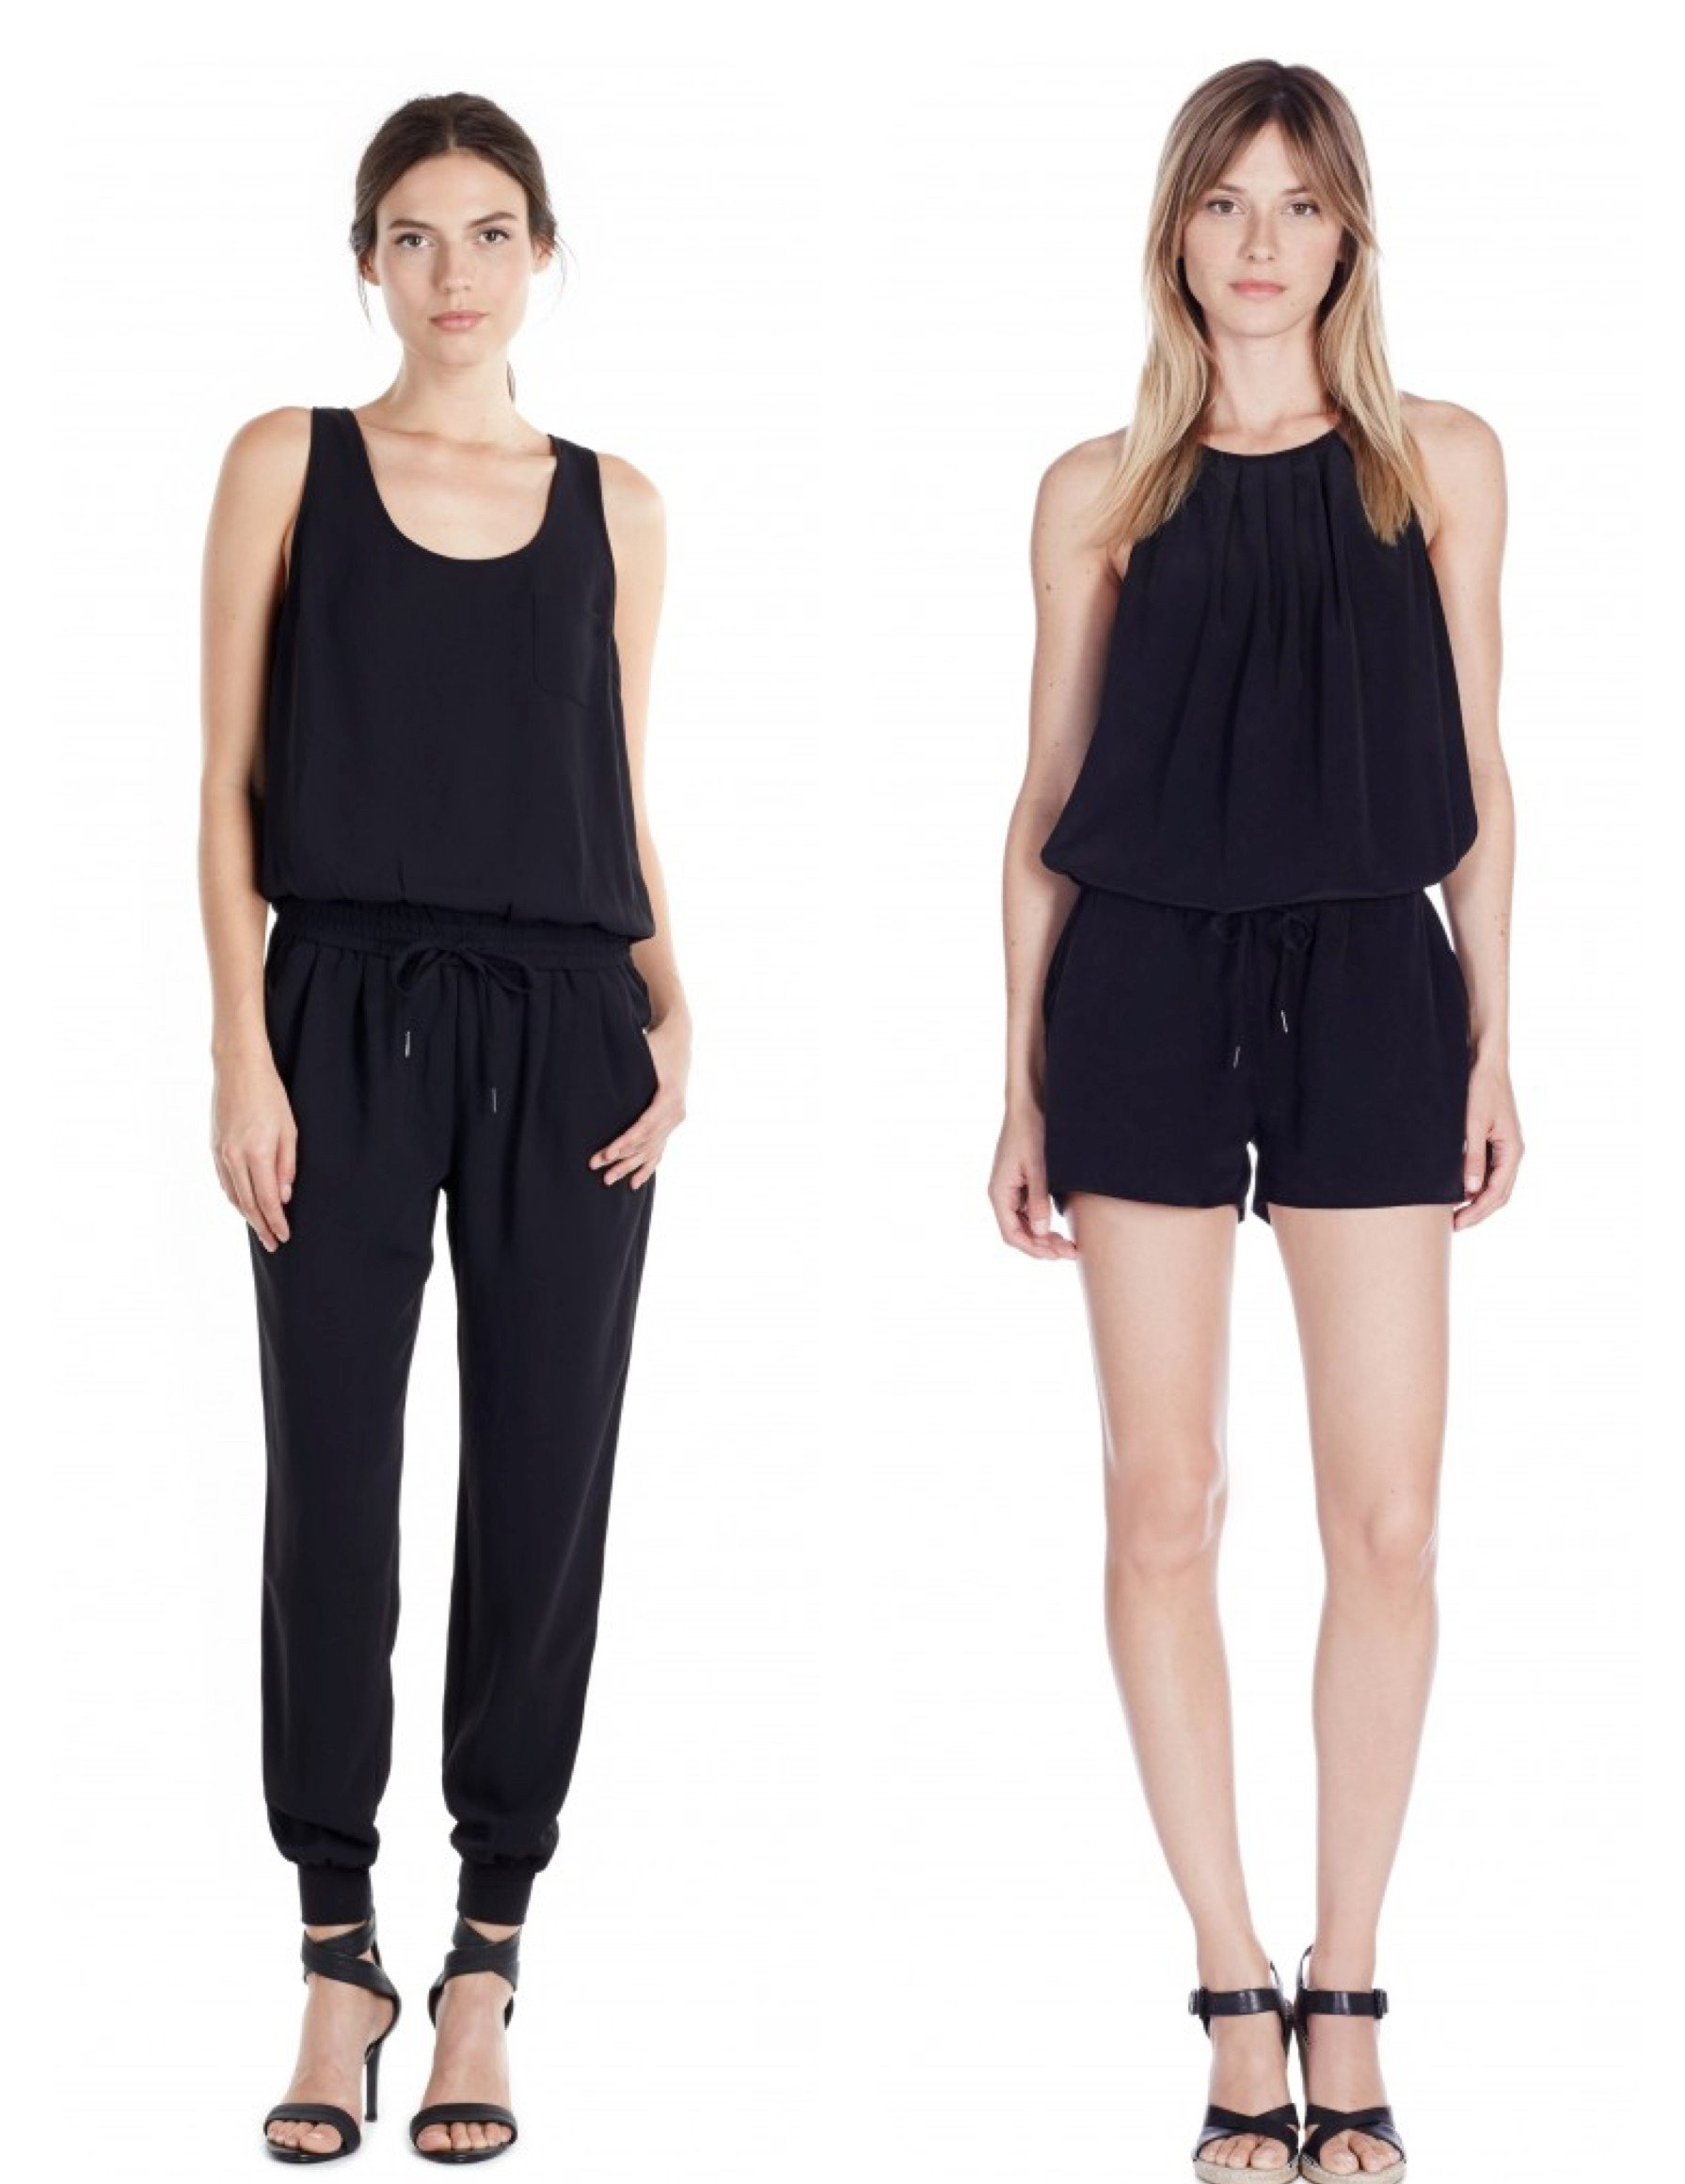 Black Jumpsuits & Rompers, What to Wear to a Taylor Swift Dinner Party (or any Dinner Party!)